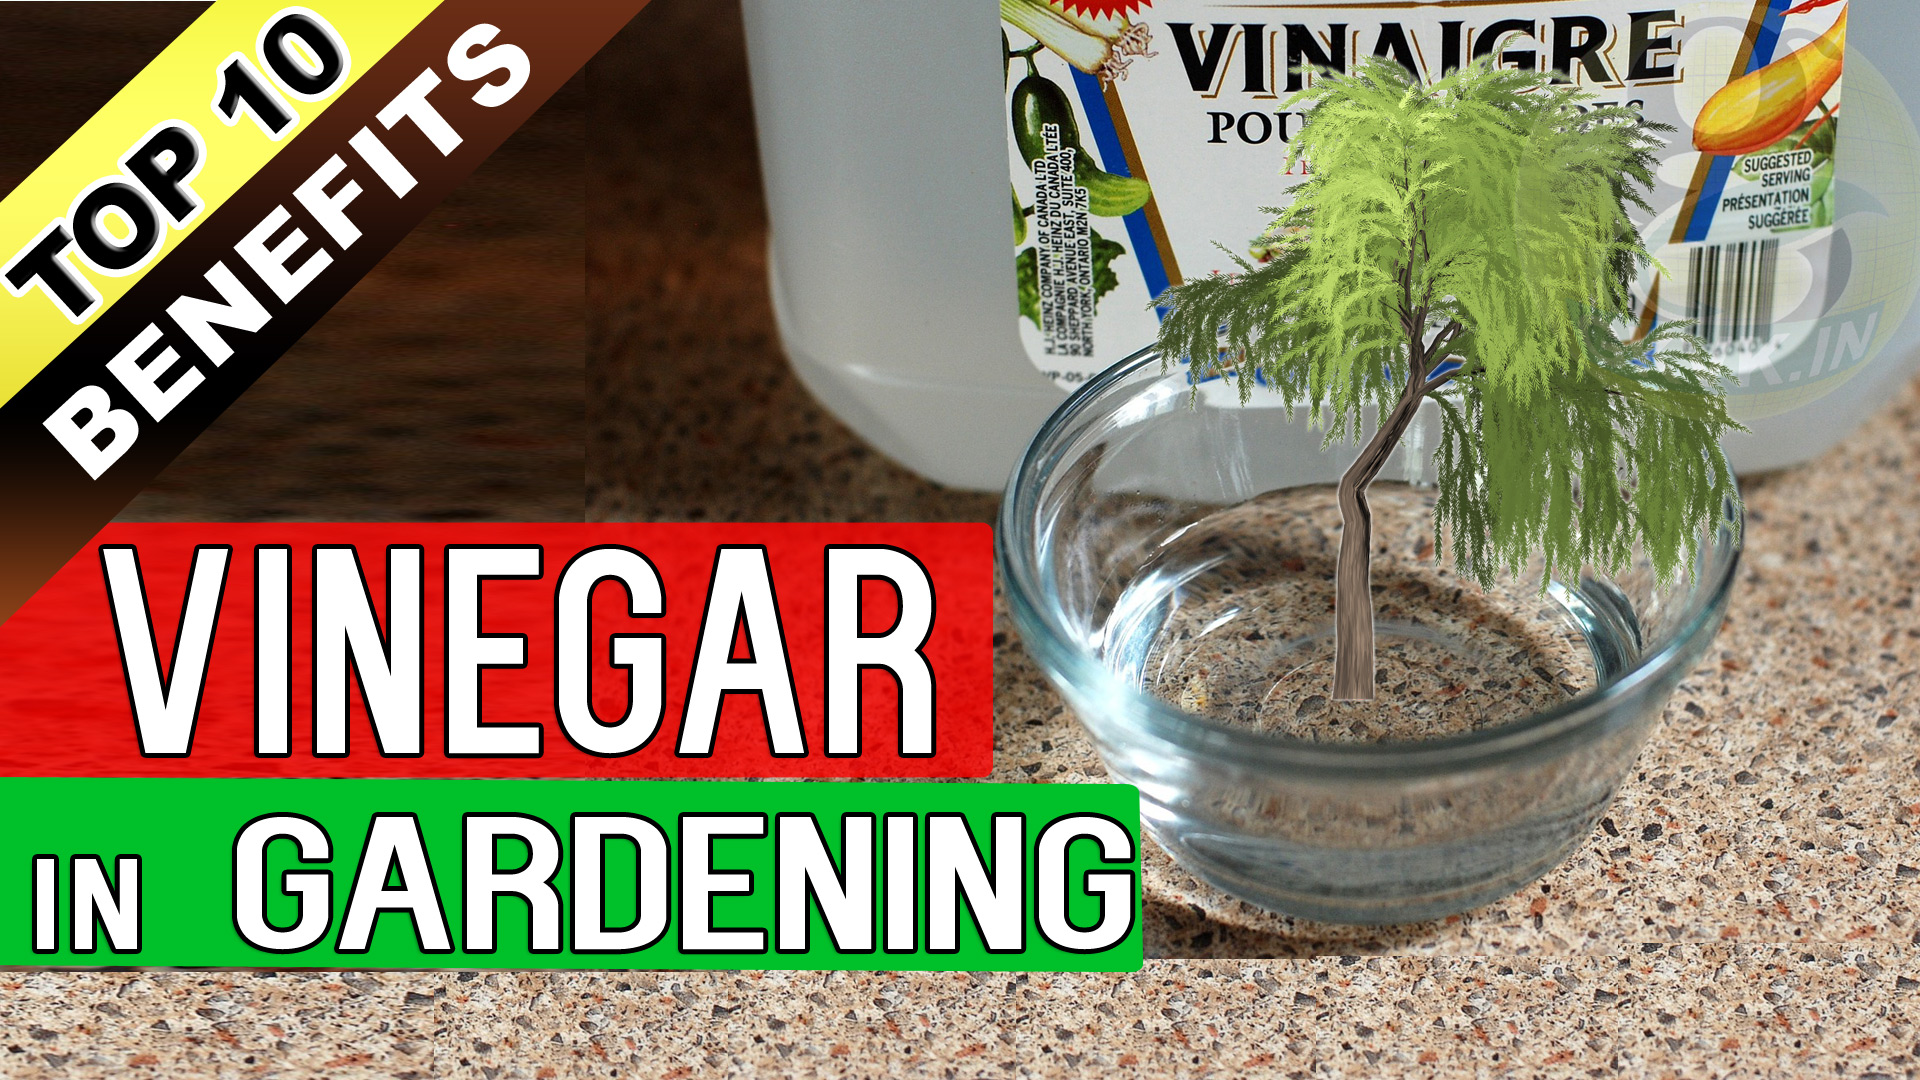 Top 10 Uses Of Vinegar In Gardening Acetic Acid Benefits In